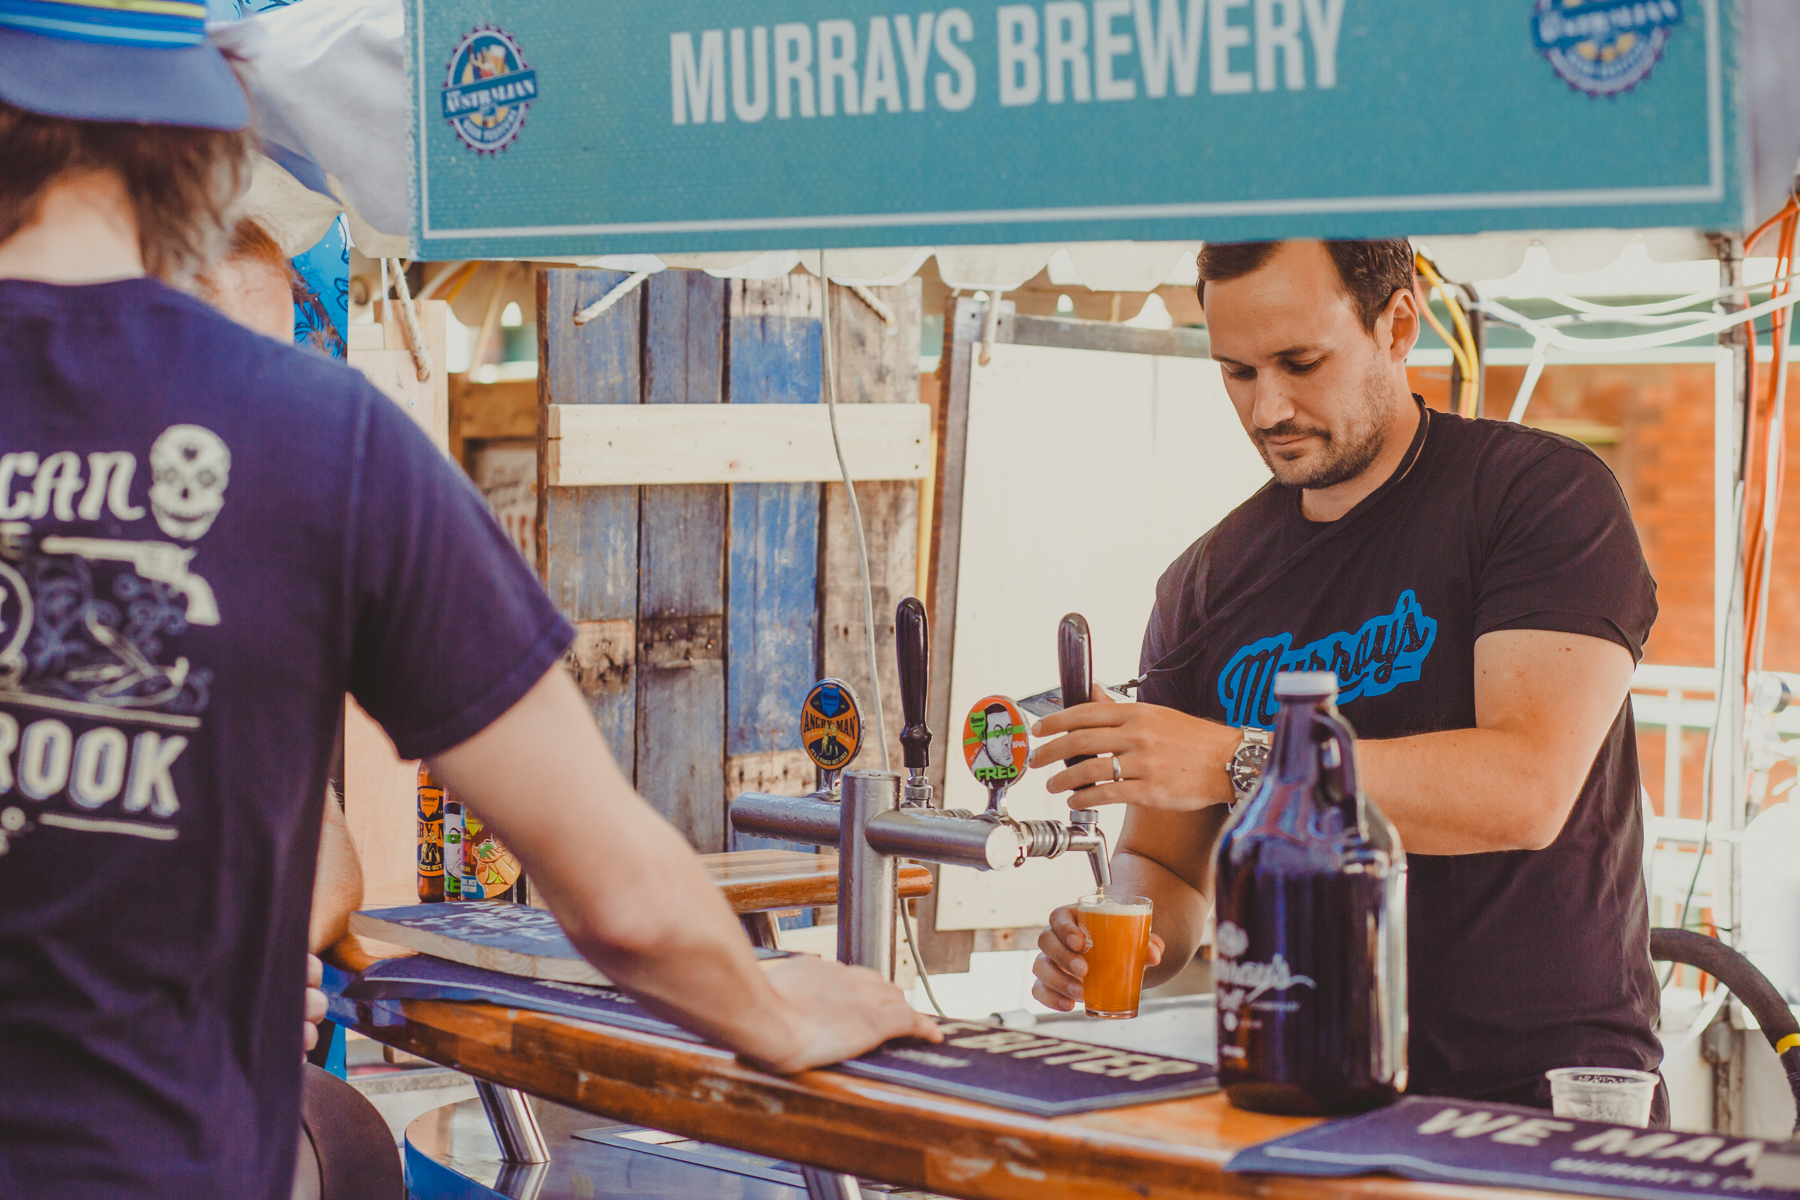 The 13th annual Australian Beer Festival returns to The Rocks